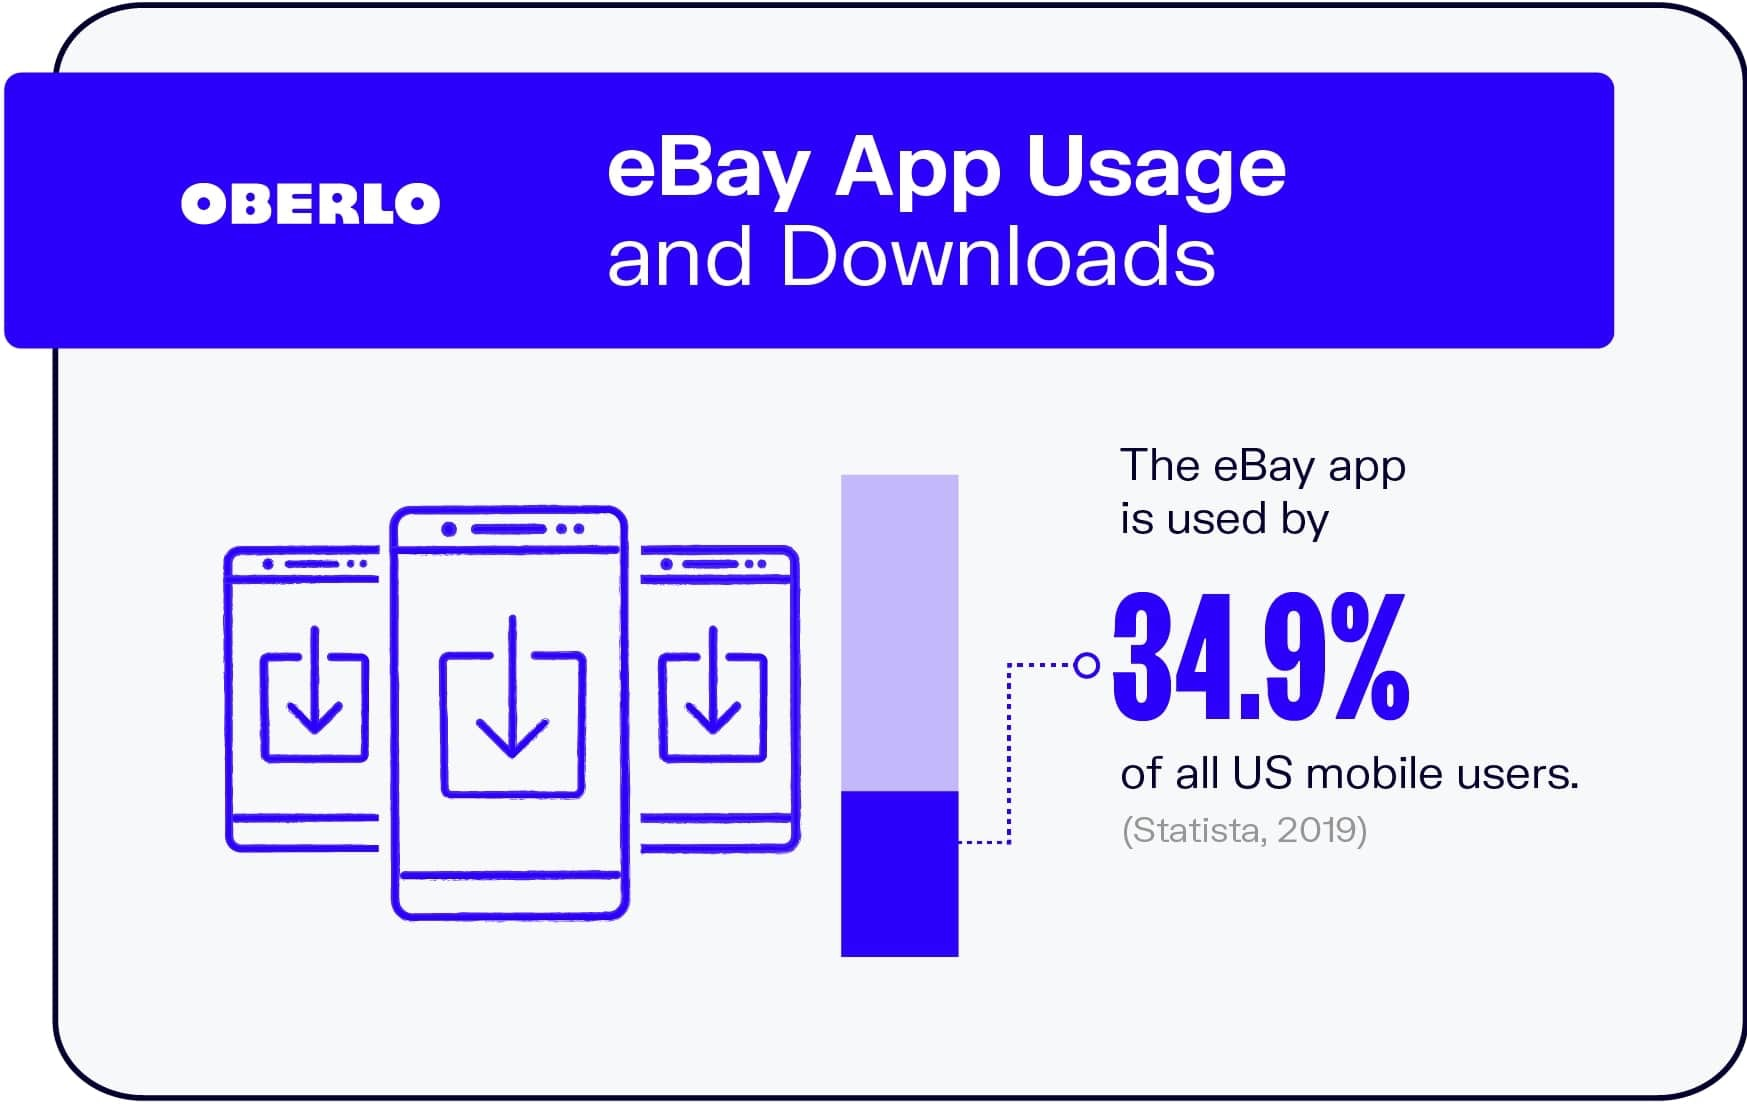 eBay App Usage and Downloads